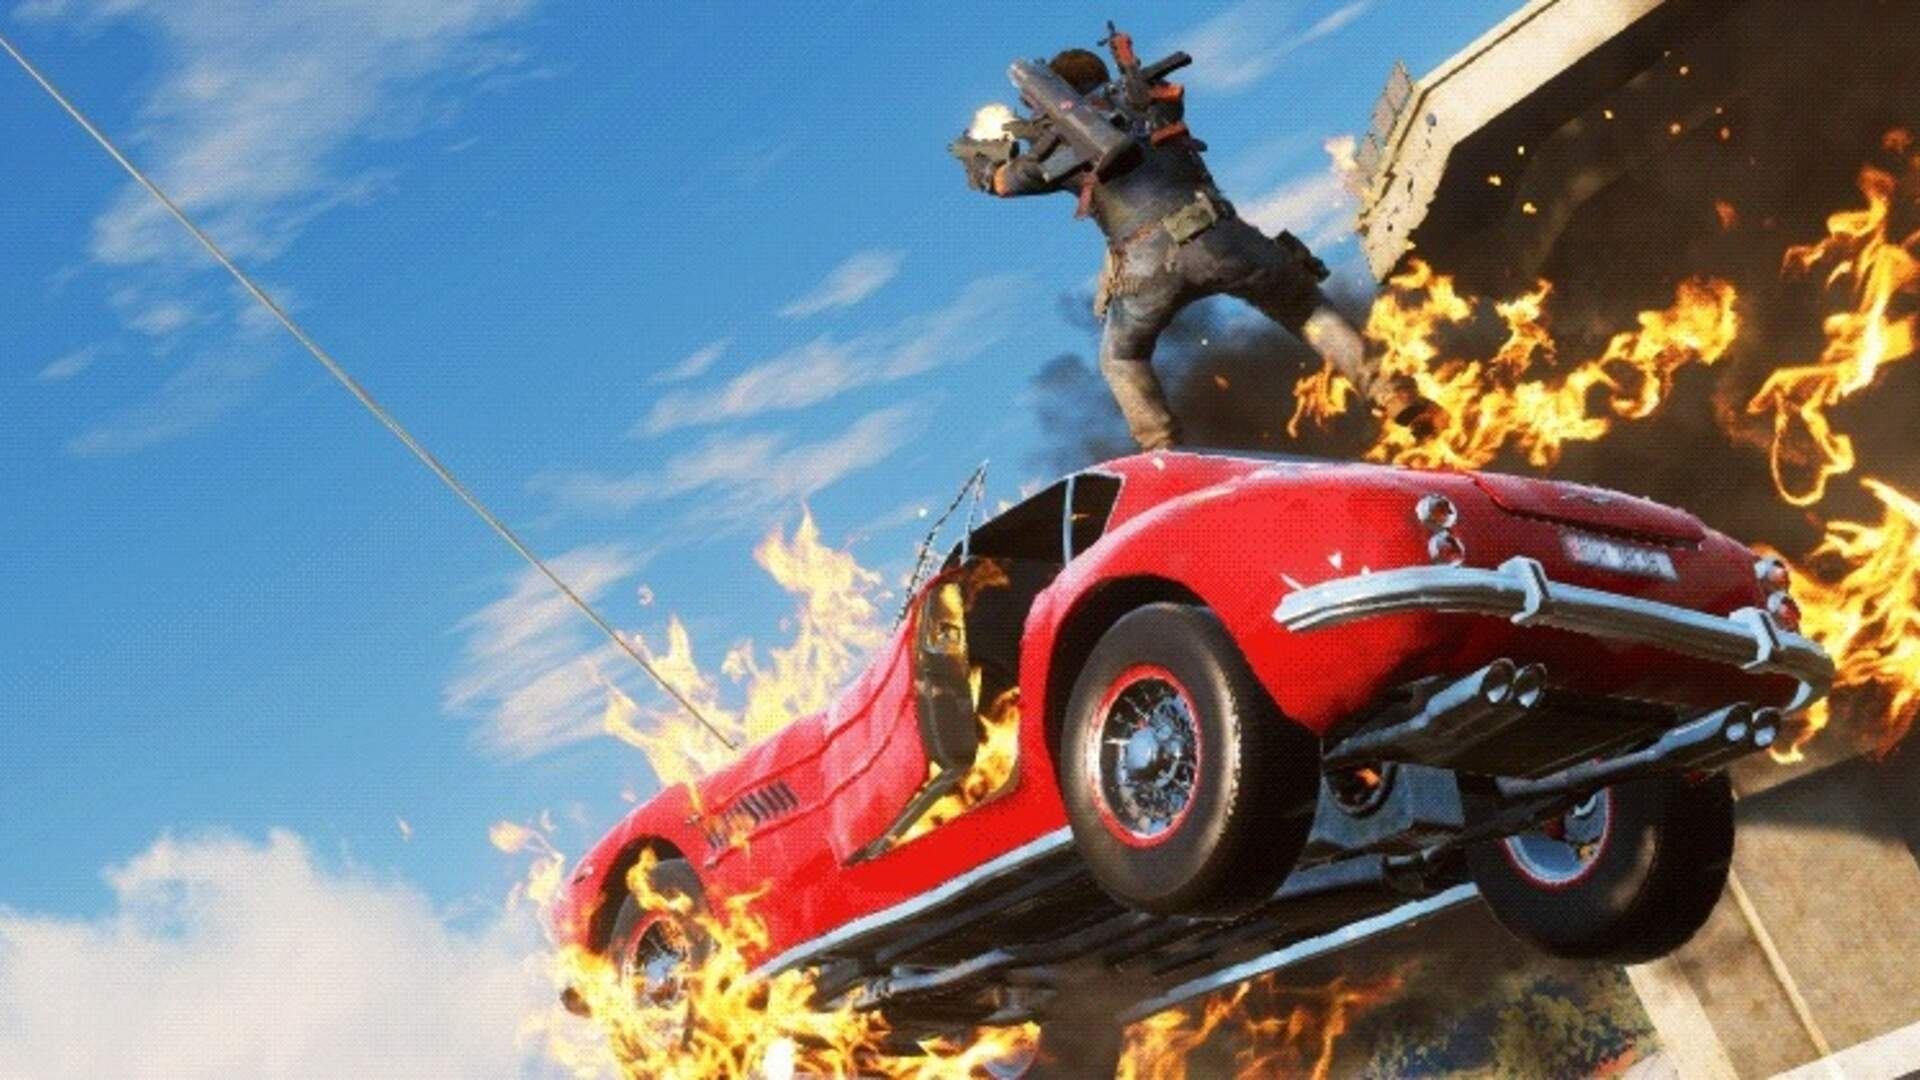 Just  Cause 3 Story Mission Guide: Missile Cowboy, Help the Rebels, Reach the Missile